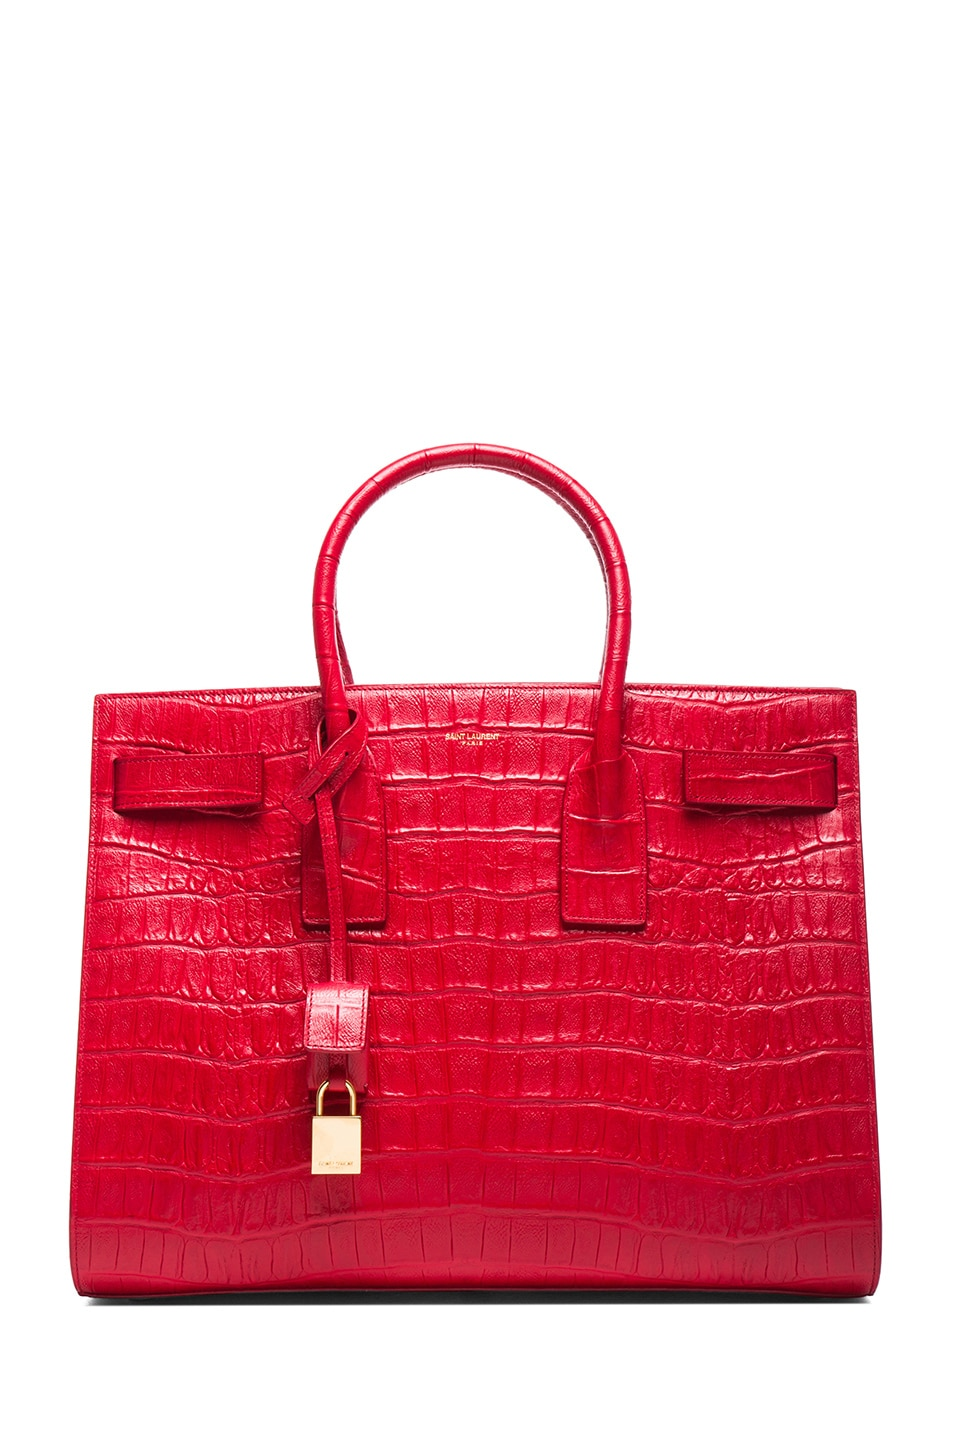 Image 1 of Saint Laurent Large Sac De Jour Croc Embossed Carryall Bag in Lipstick Red